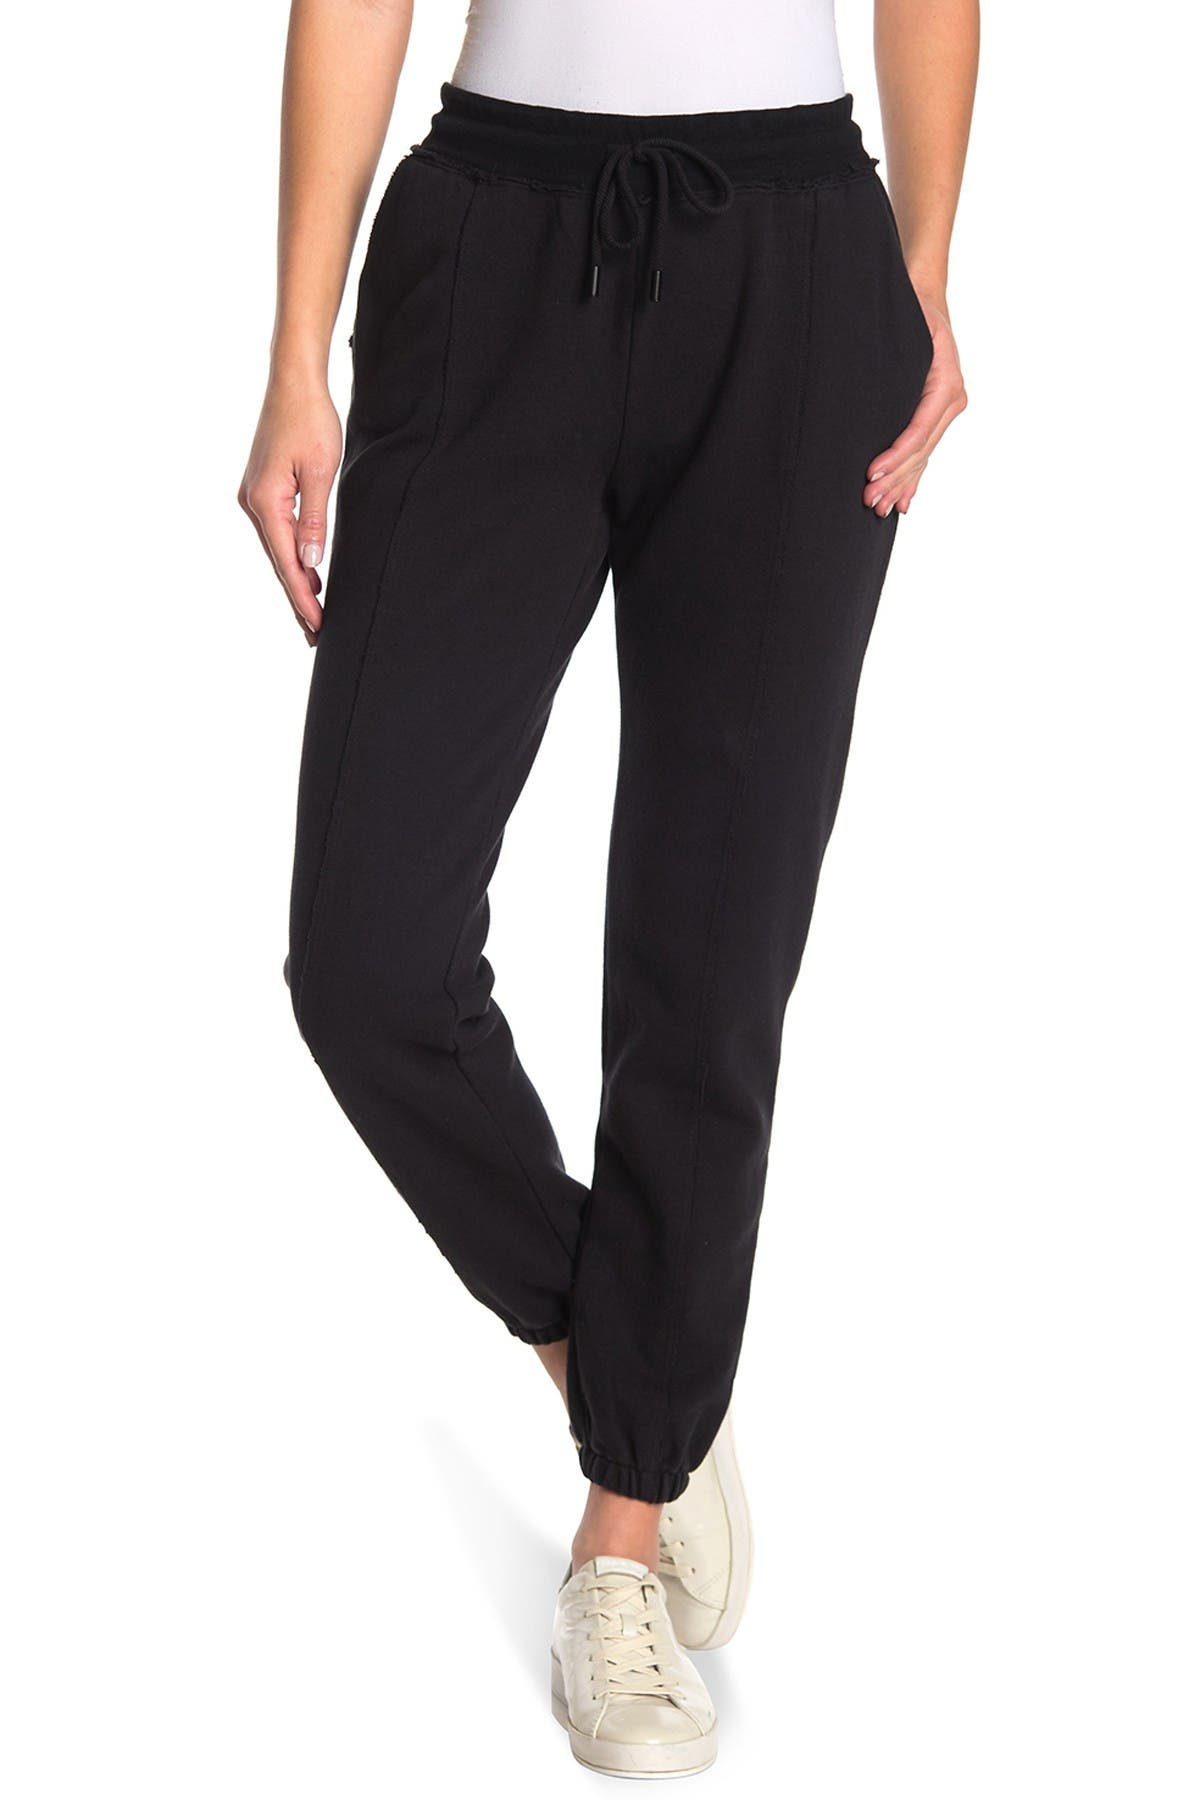 Nicole Miller Core French Terry Skinny Sweatpants In Black